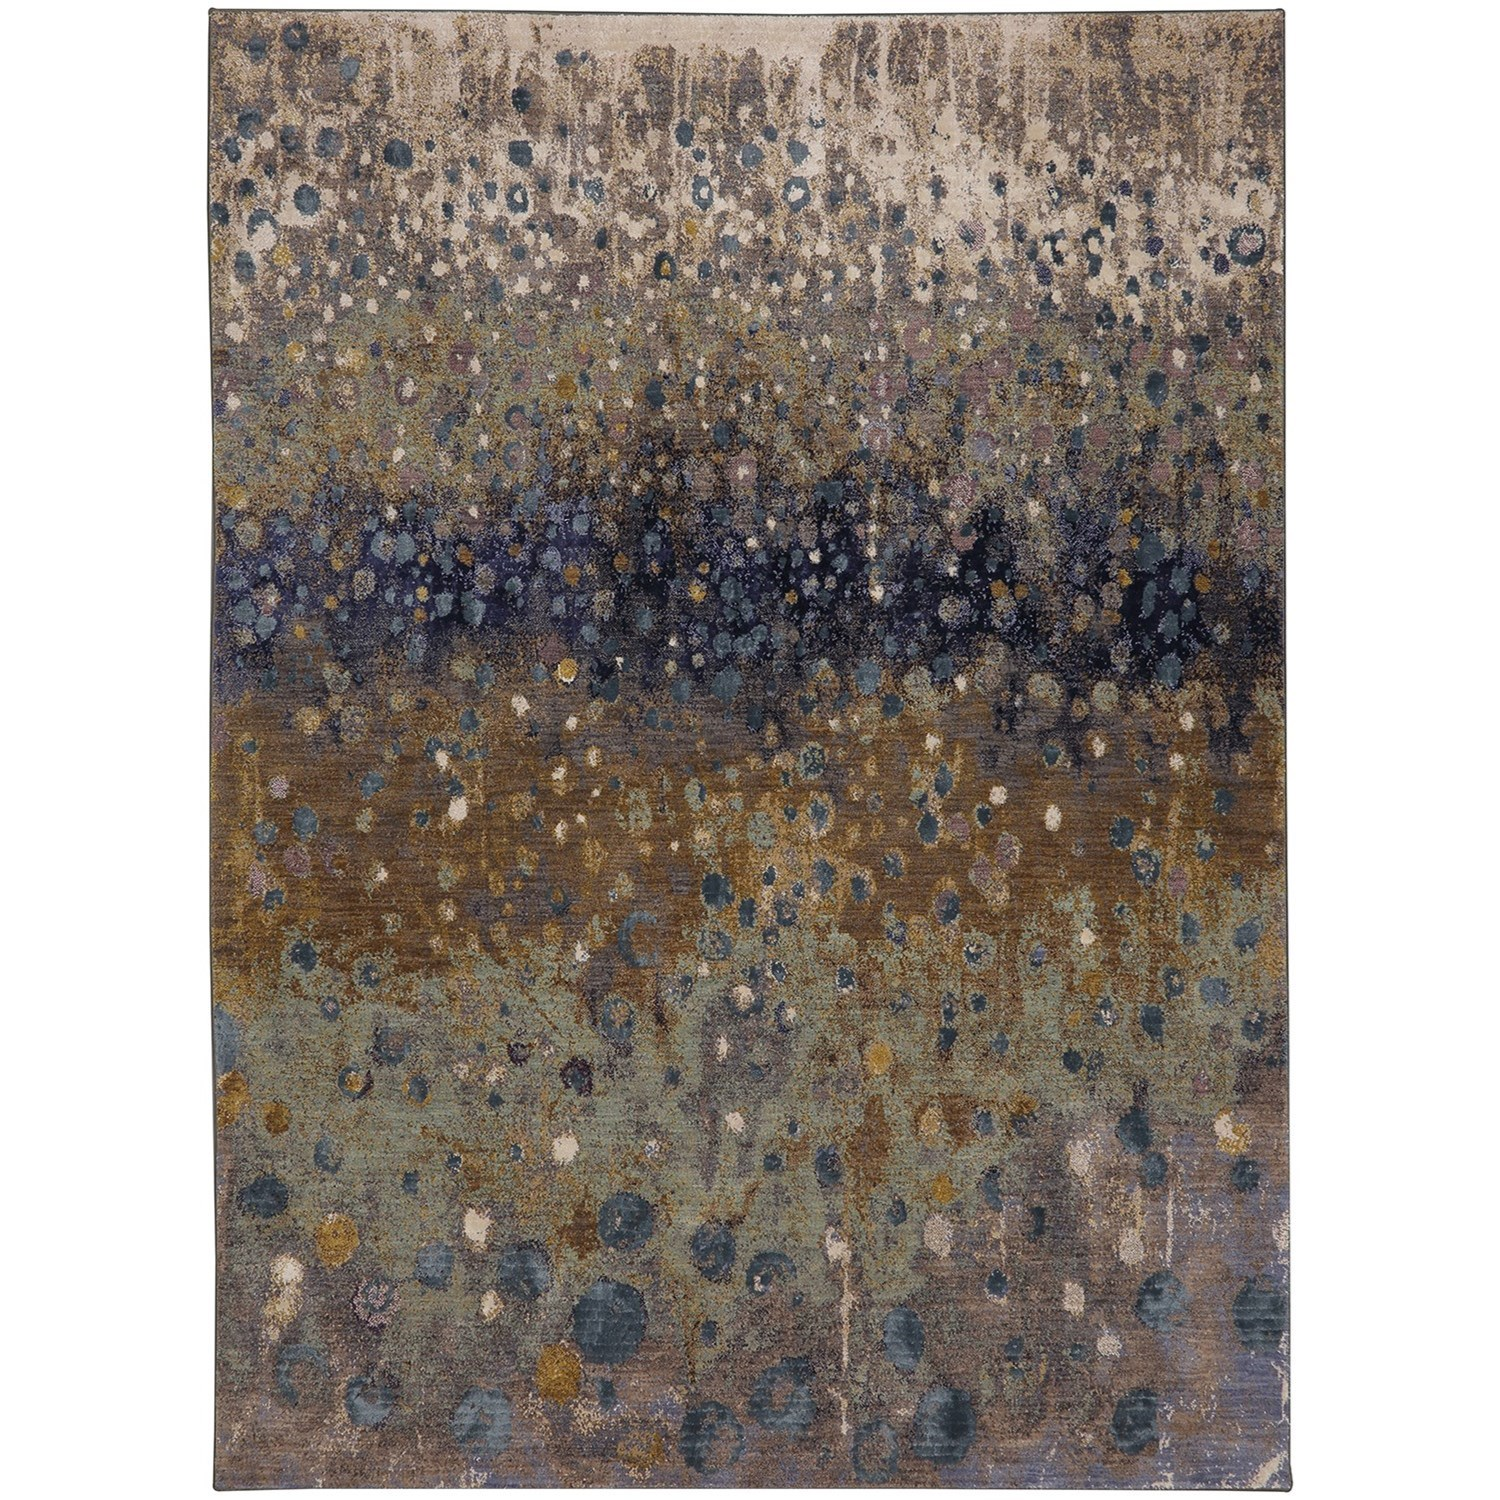 "9' 6""x12' 11"" Rectangle Abstract Area Rug"